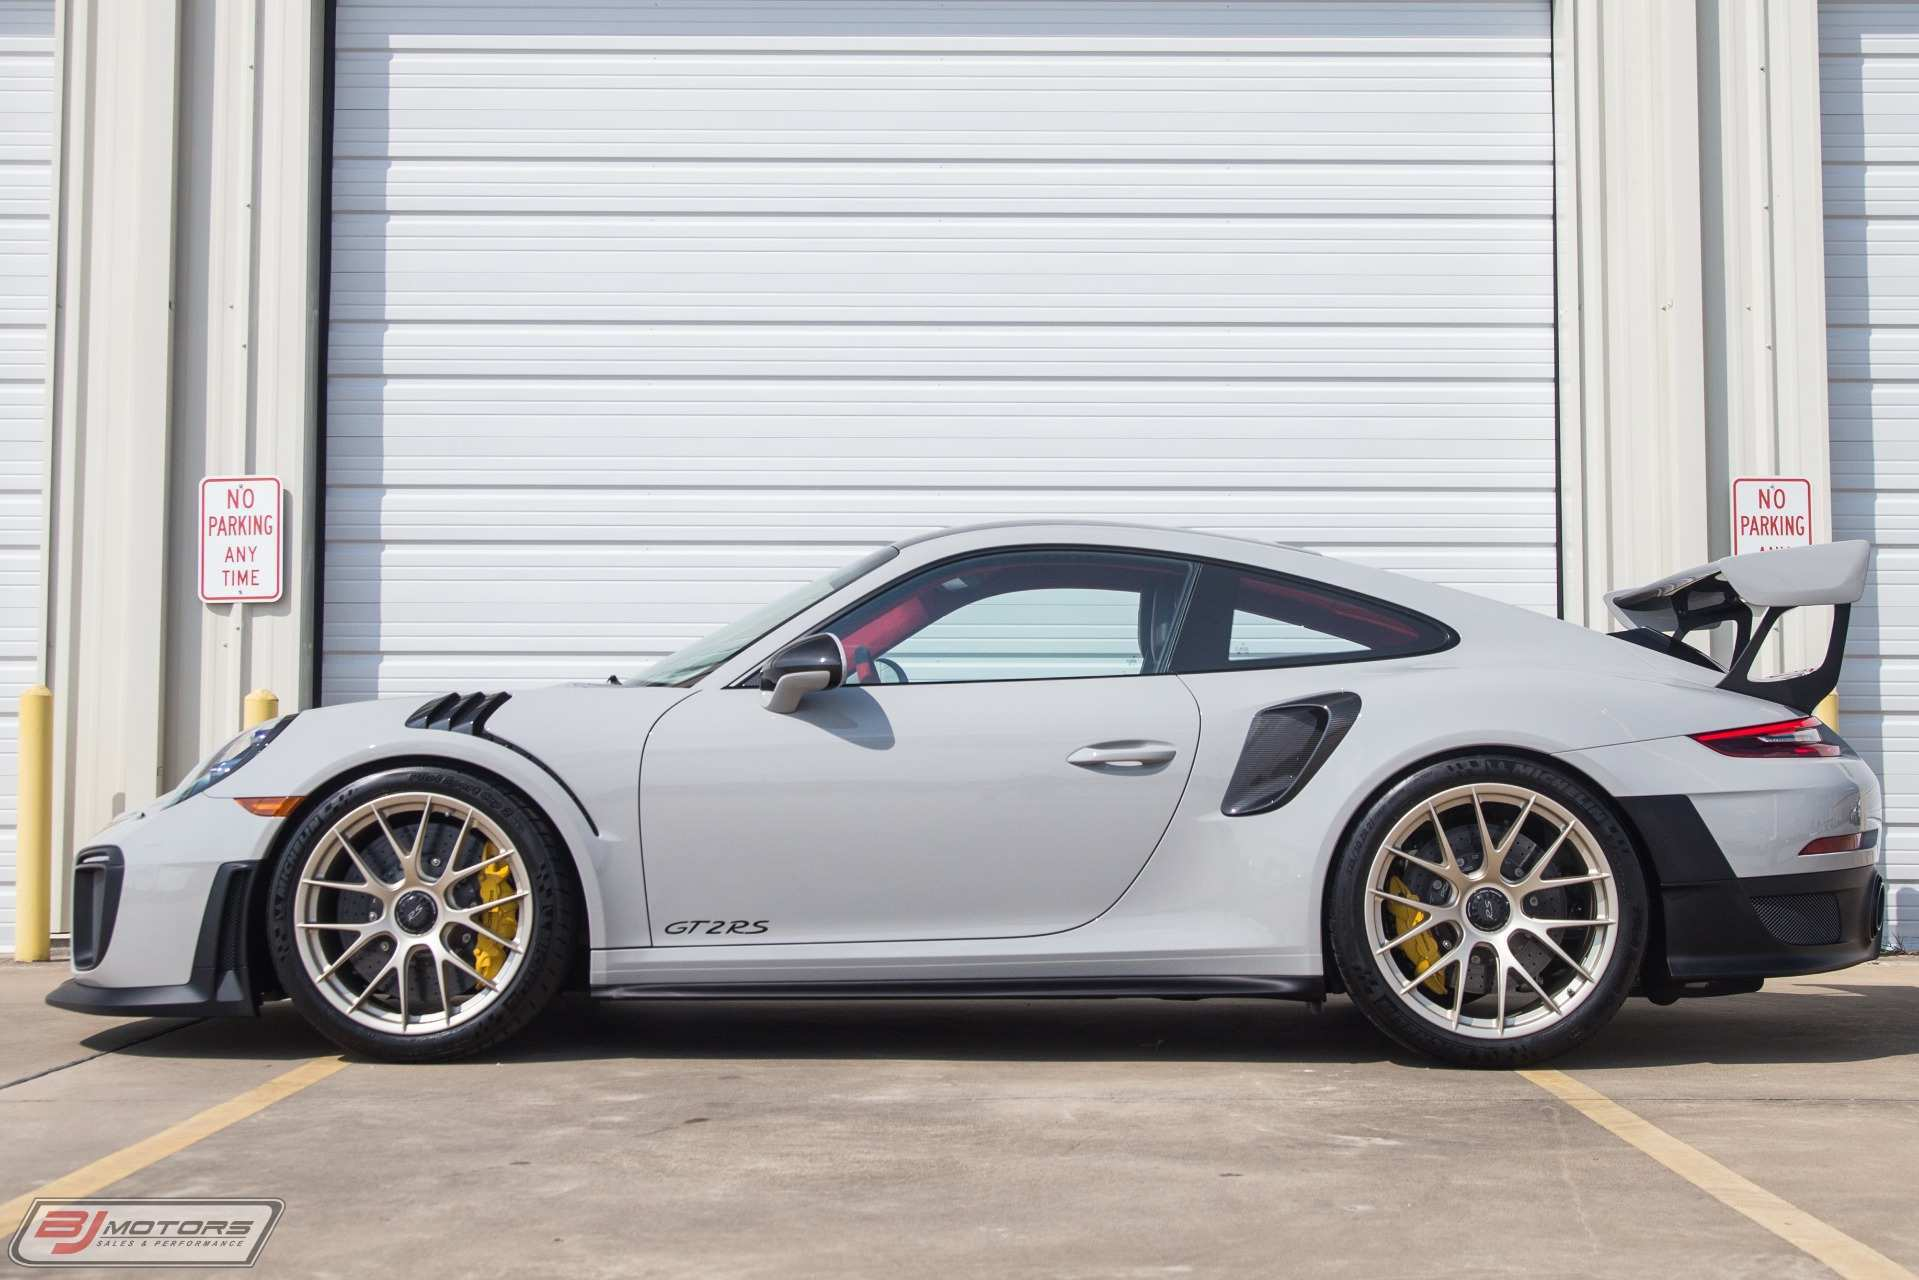 52 Gallery of 2019 Porsche Gt2 Rs For Sale Reviews by 2019 Porsche Gt2 Rs For Sale